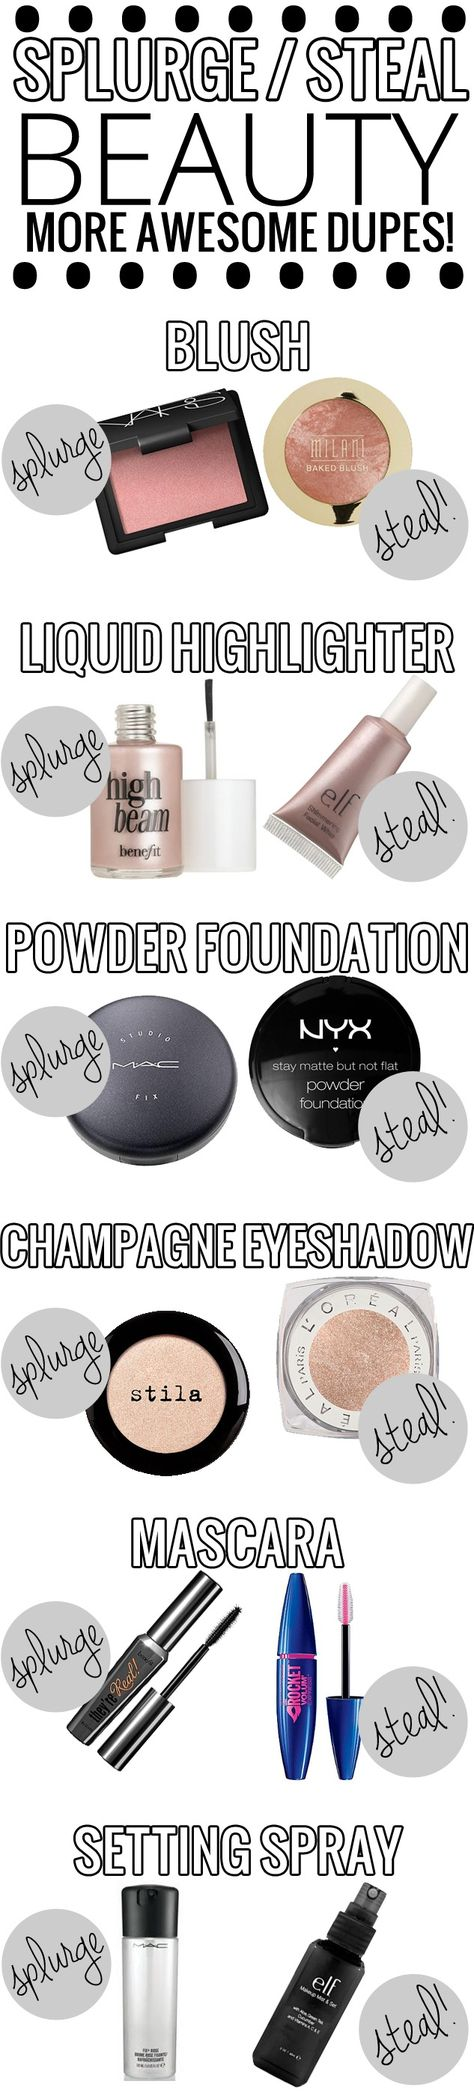 Splurge vs. Steal Beauty - AWESOME list of drugstore dupes for high end makeup!